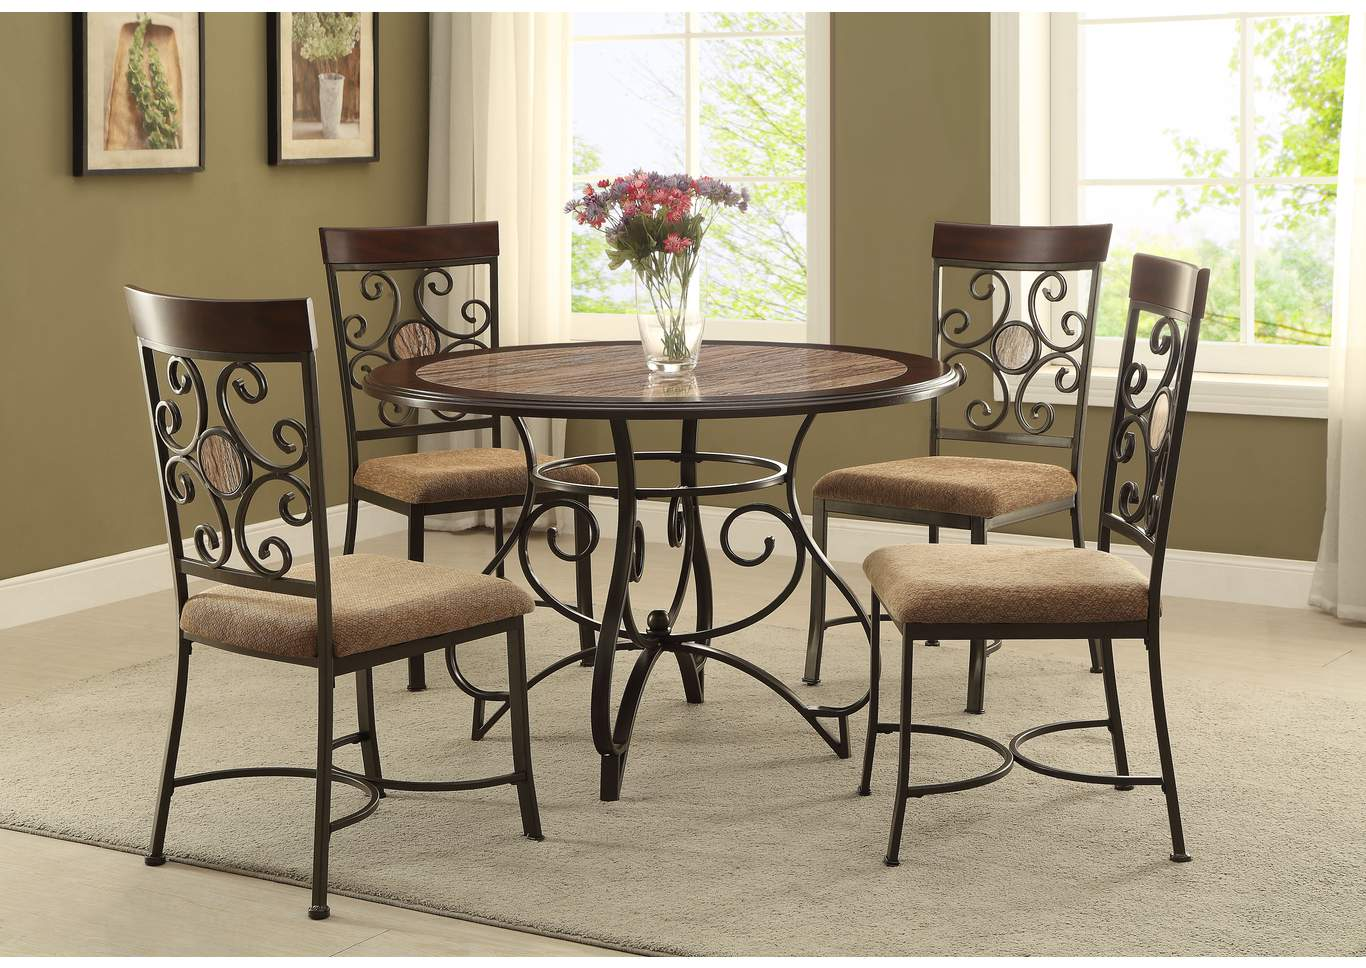 Ivan smith sarah round dining table w metal pedestal base for Front room sets